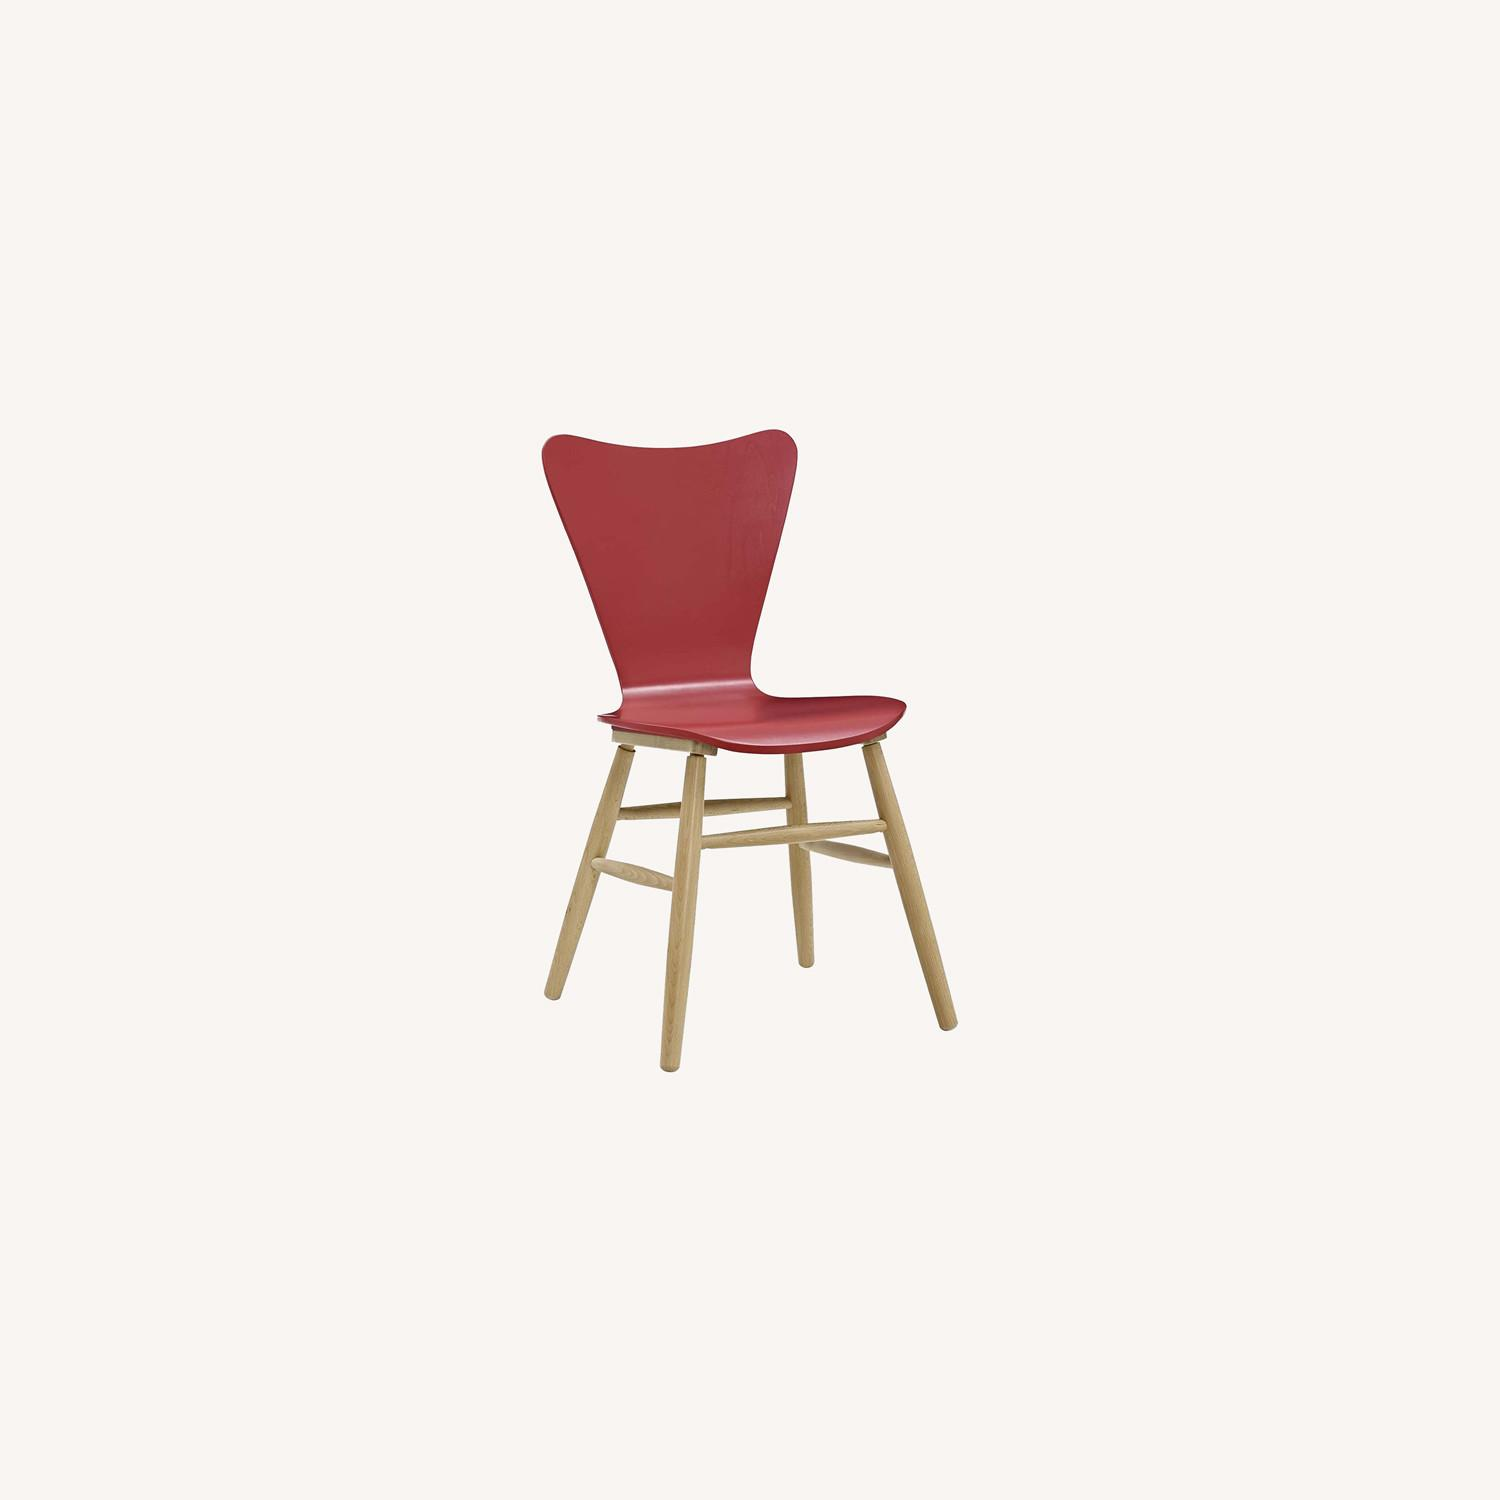 Mid-Century Style Dining Chair In Red Finish - image-4